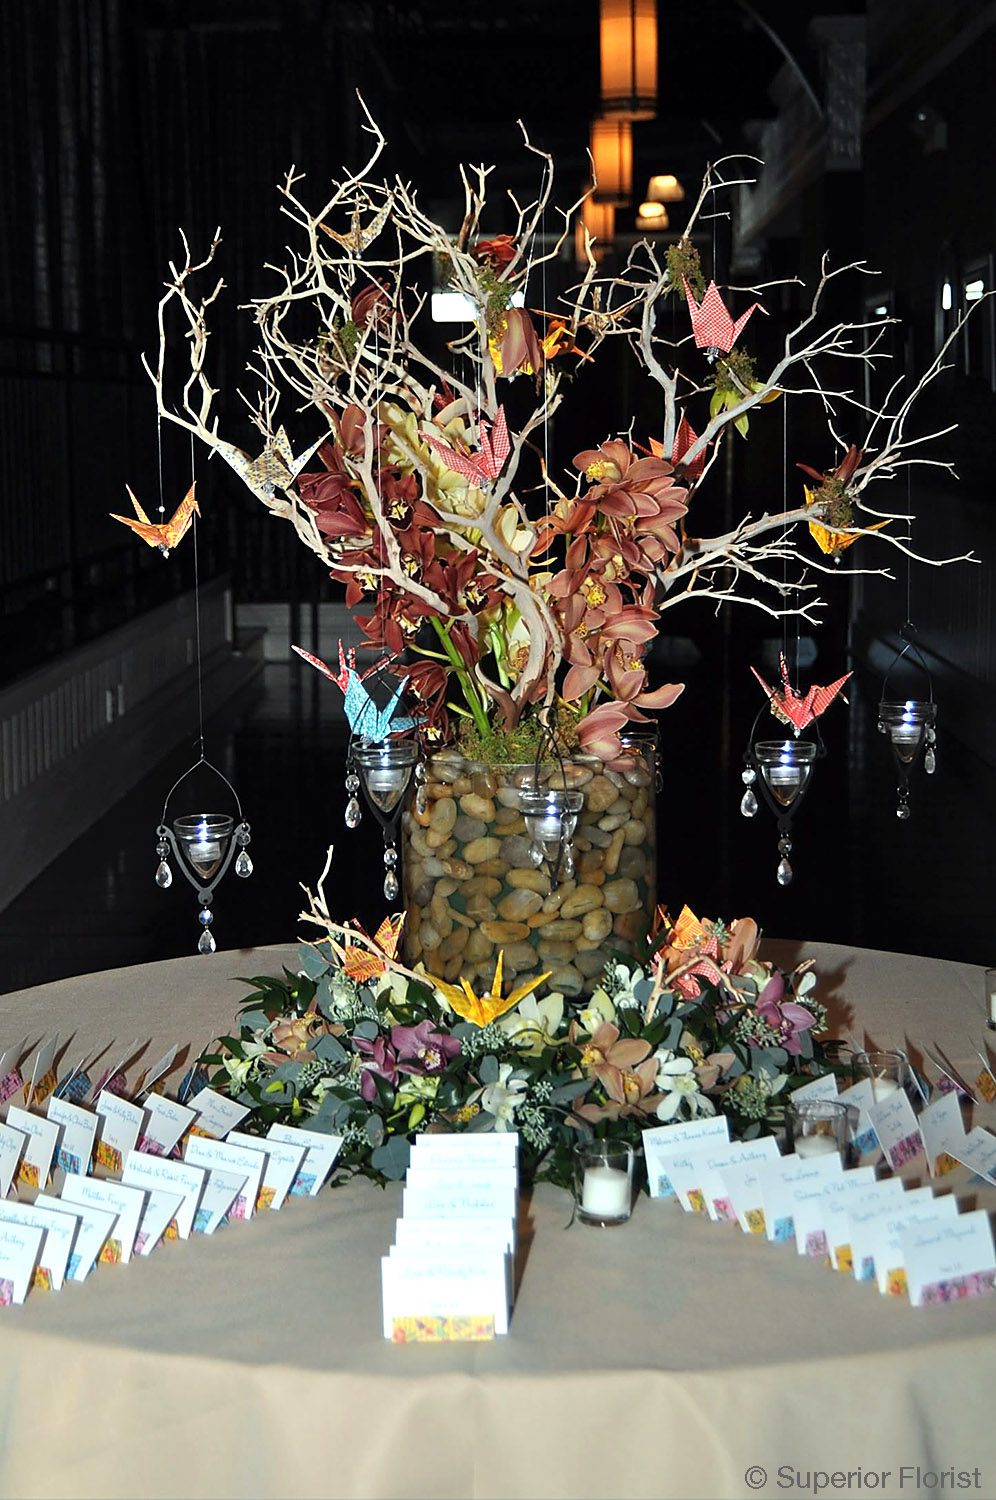 Superior Florist – Weddings – Escort Tables: Manzanita branches; miniature Cymbidiums and hanging votive candles. Origami cranes made by the bride. Matching ring of flowers at base. Clear, glass vase filled with river rocks.